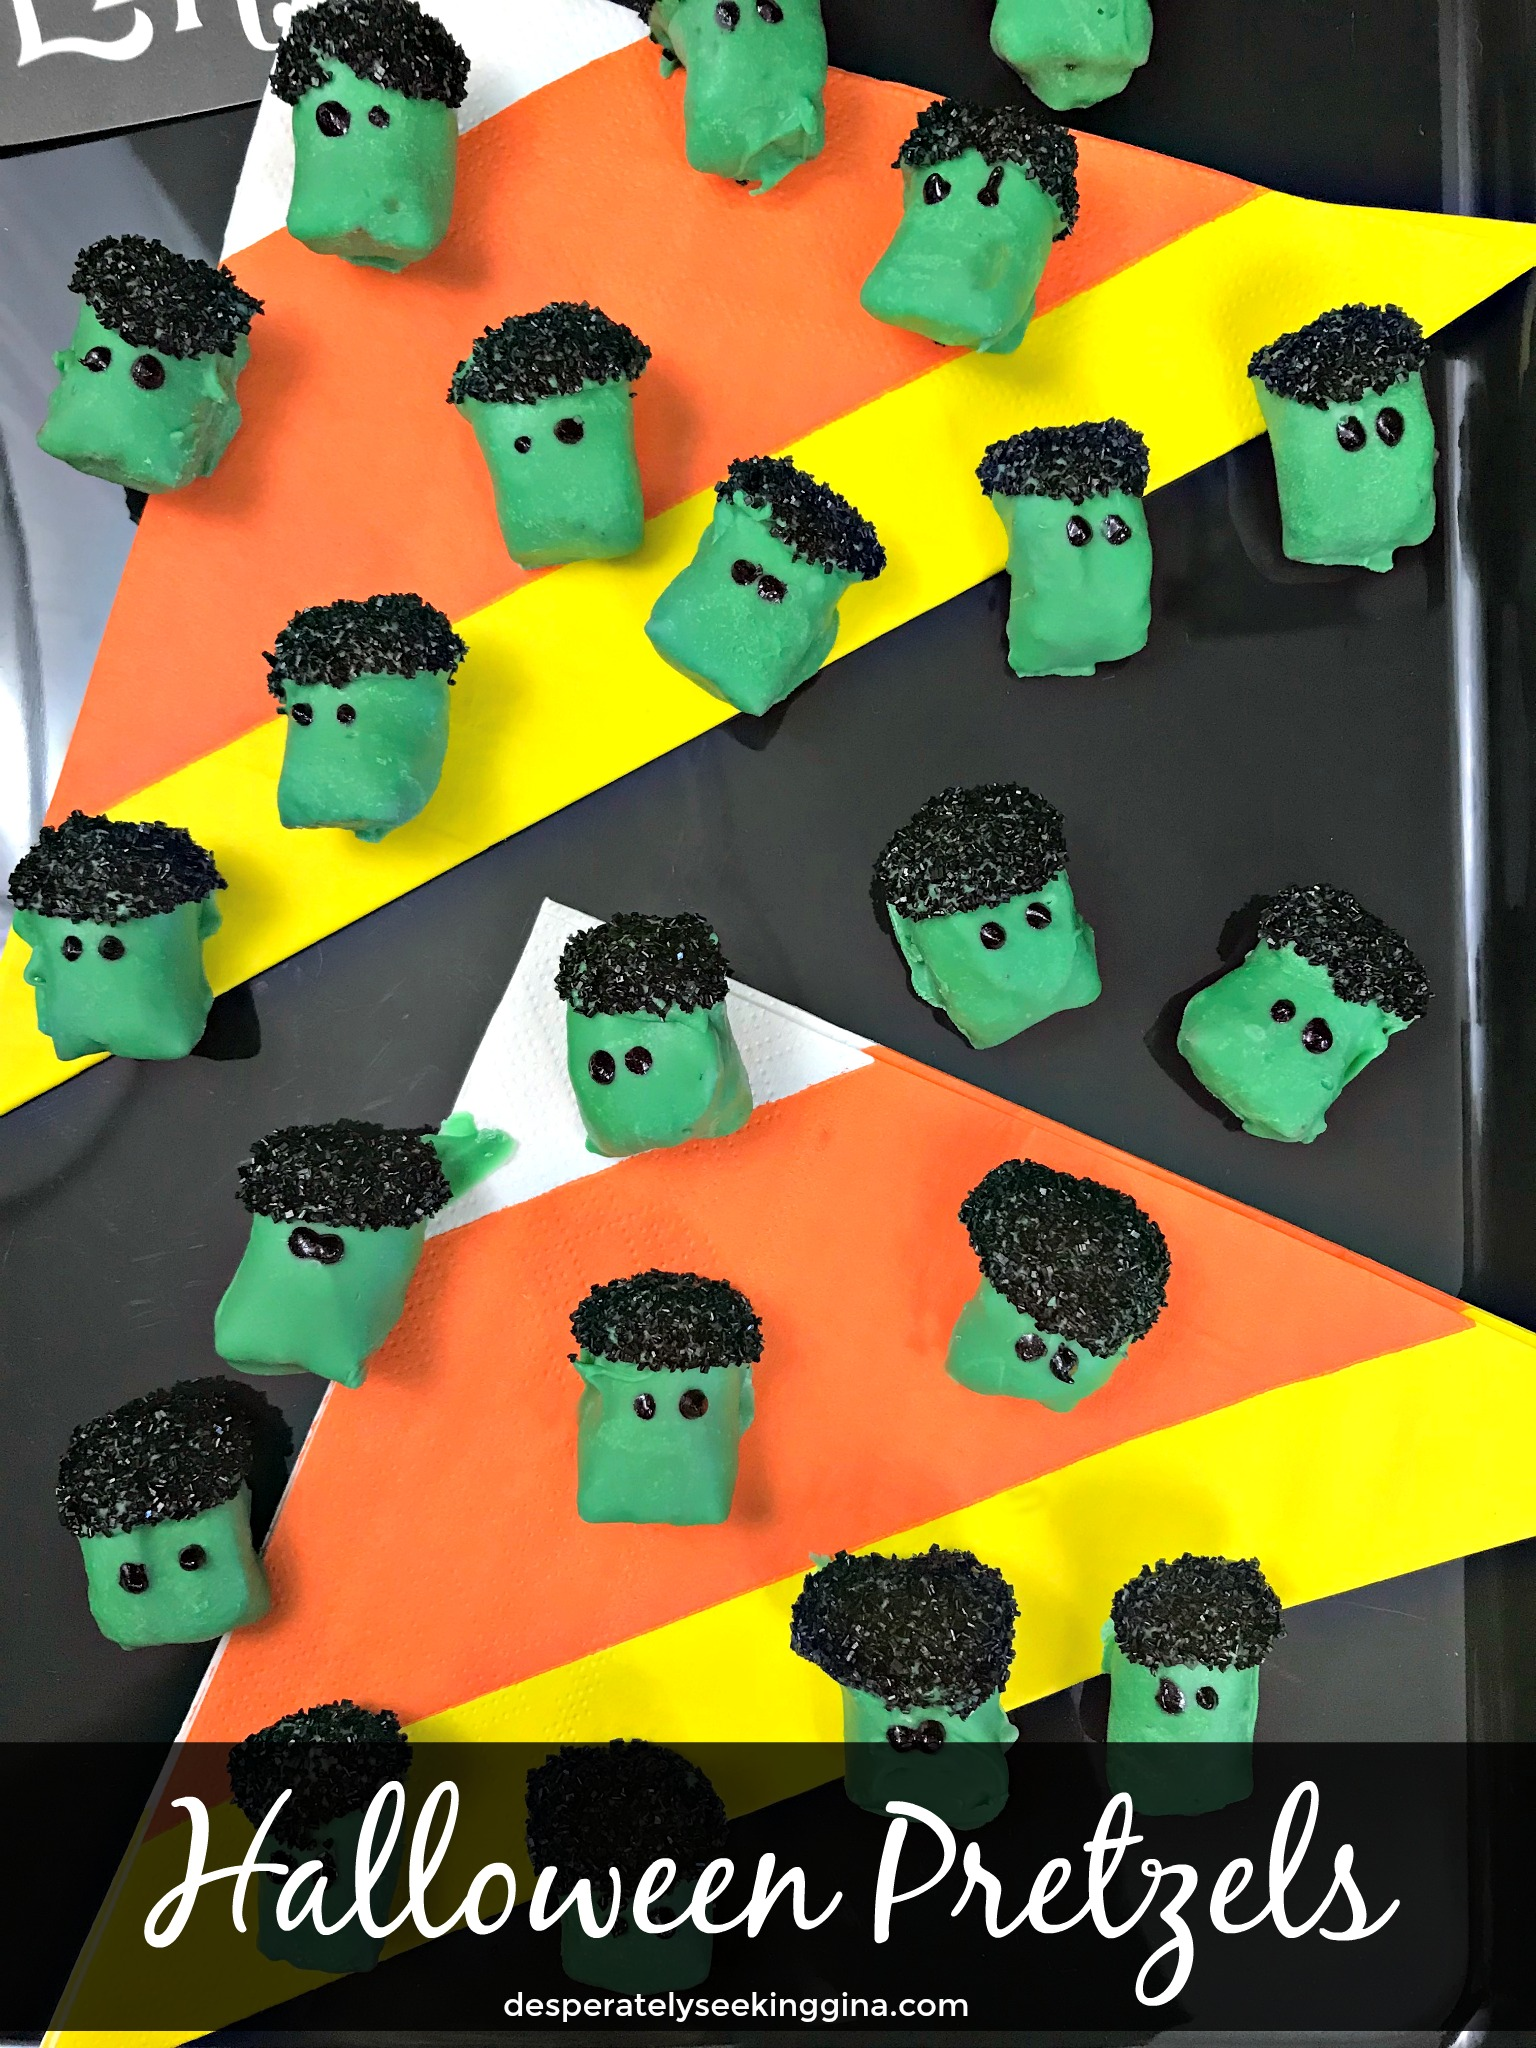 Fun Halloween Pretzels dipped in green candy coating and black sanding sugar for Frankenstein inspired Halloween candies.